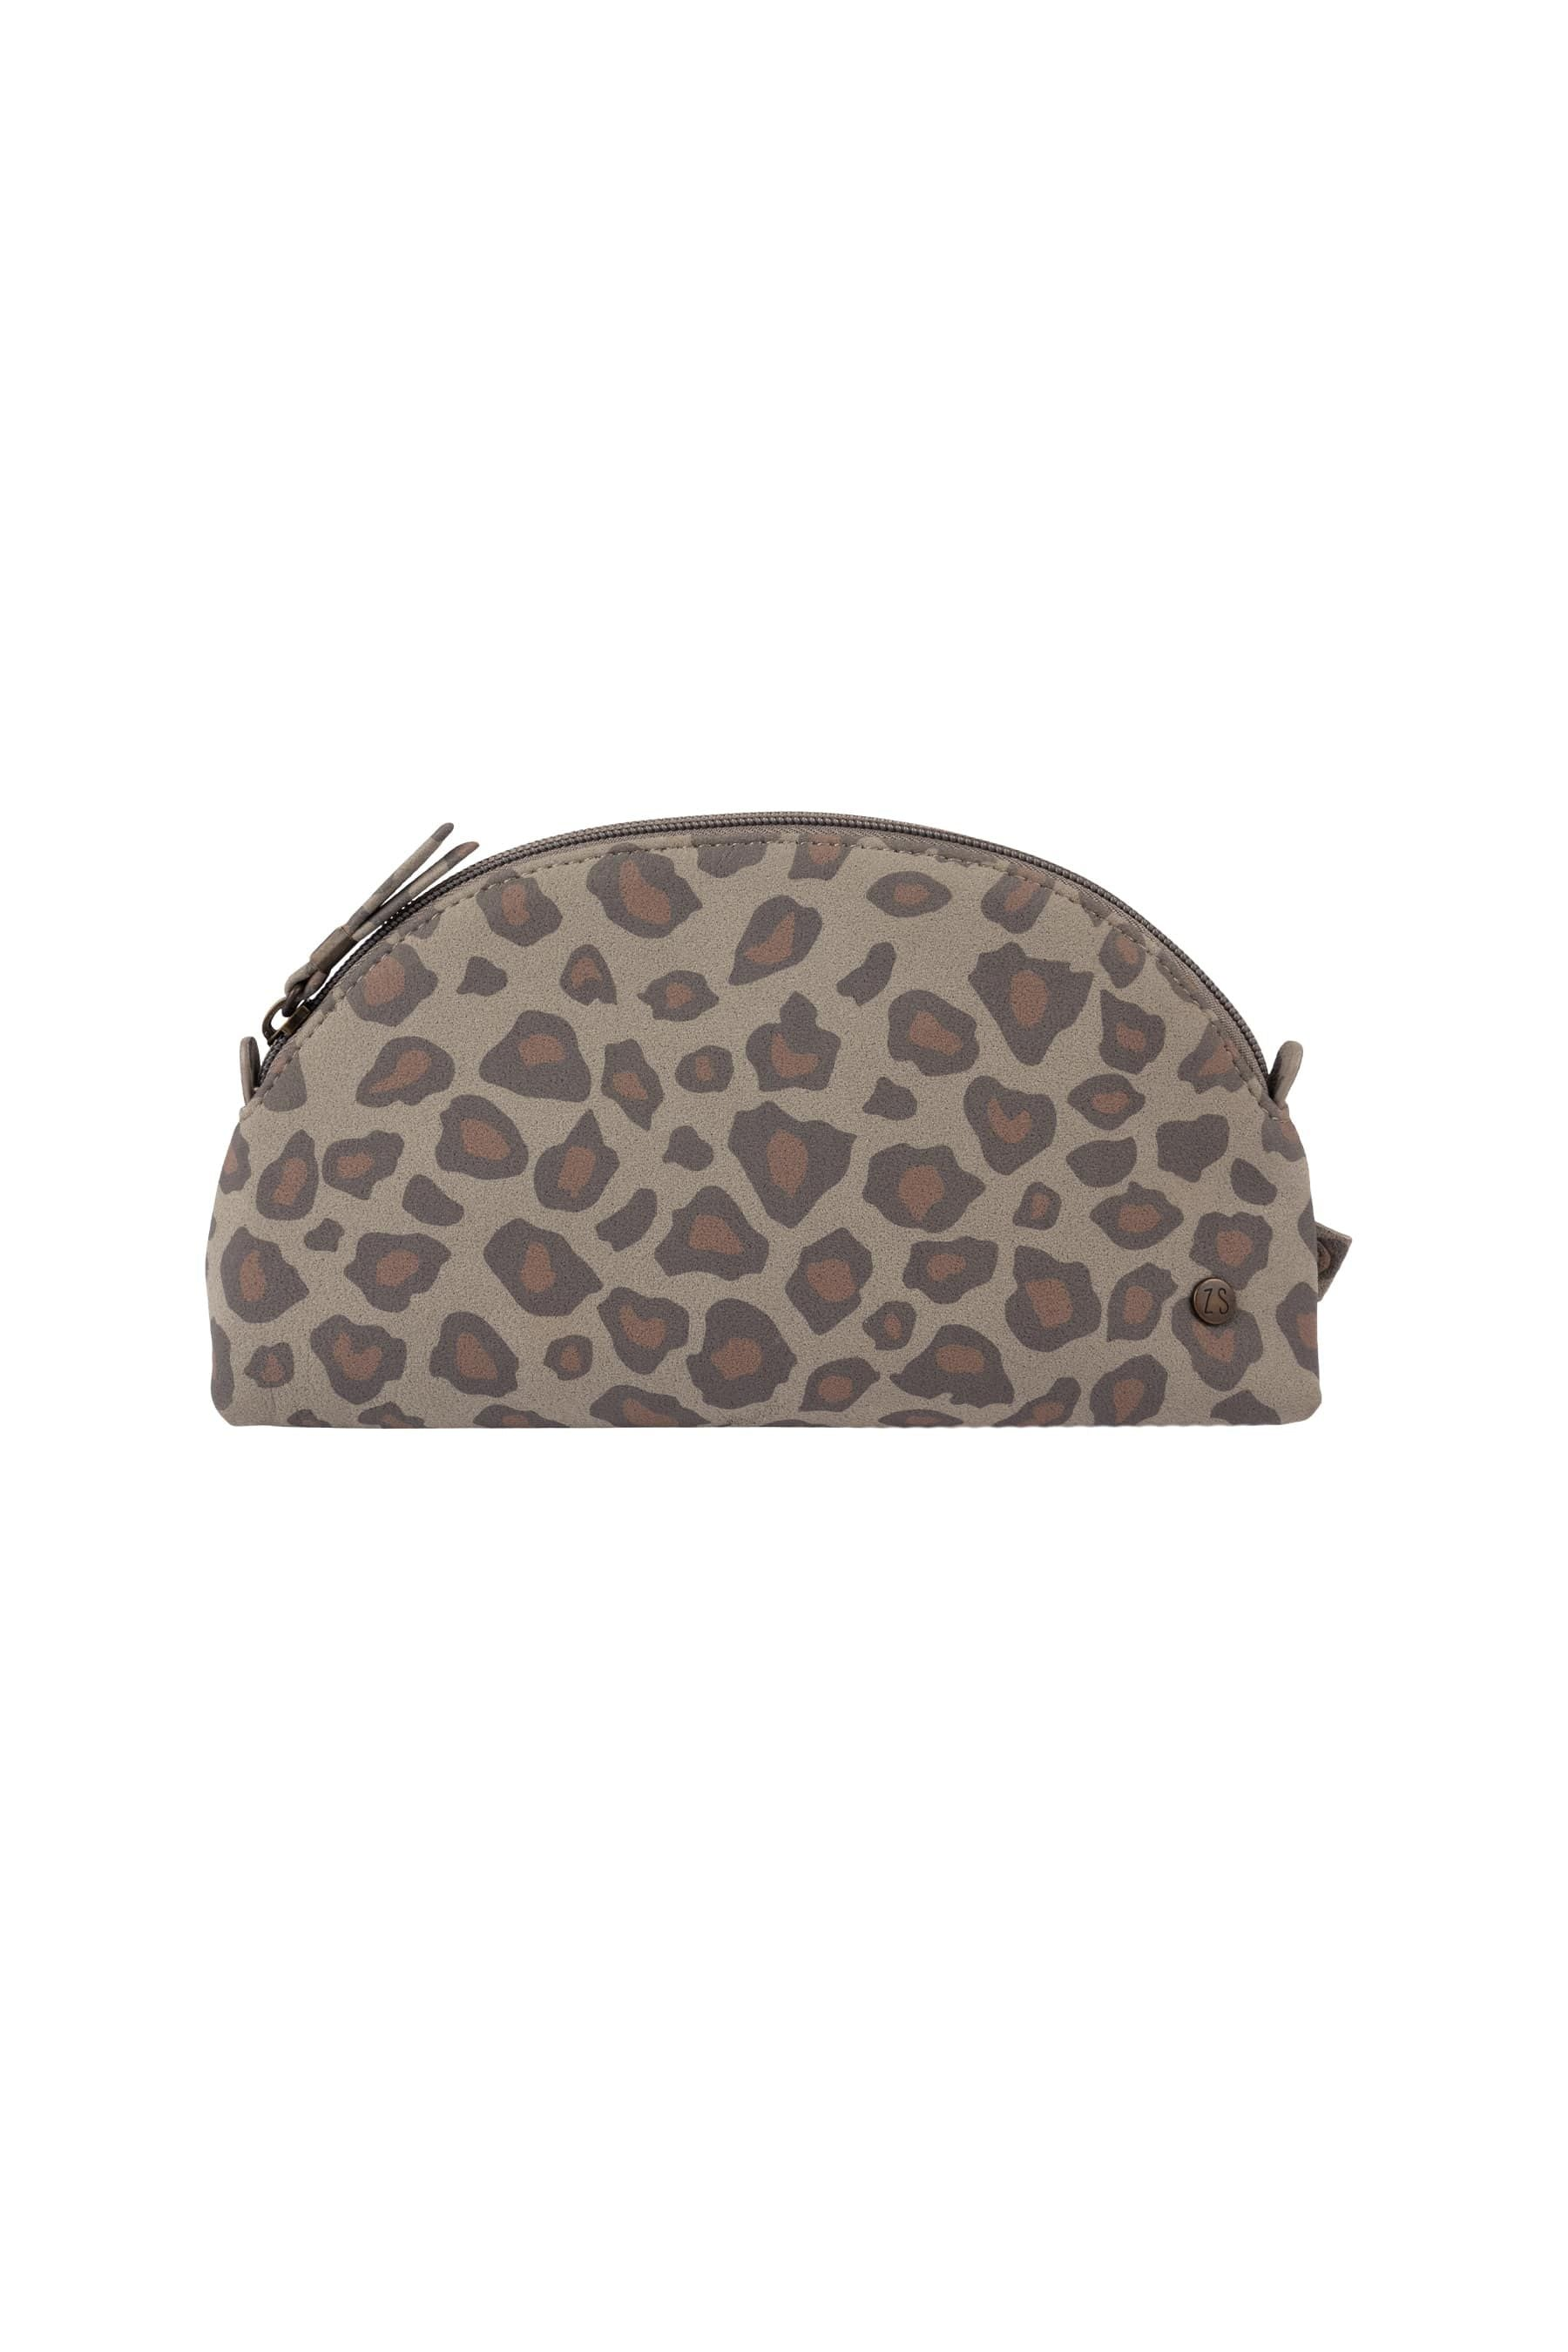 Make-up tasje met leopard print